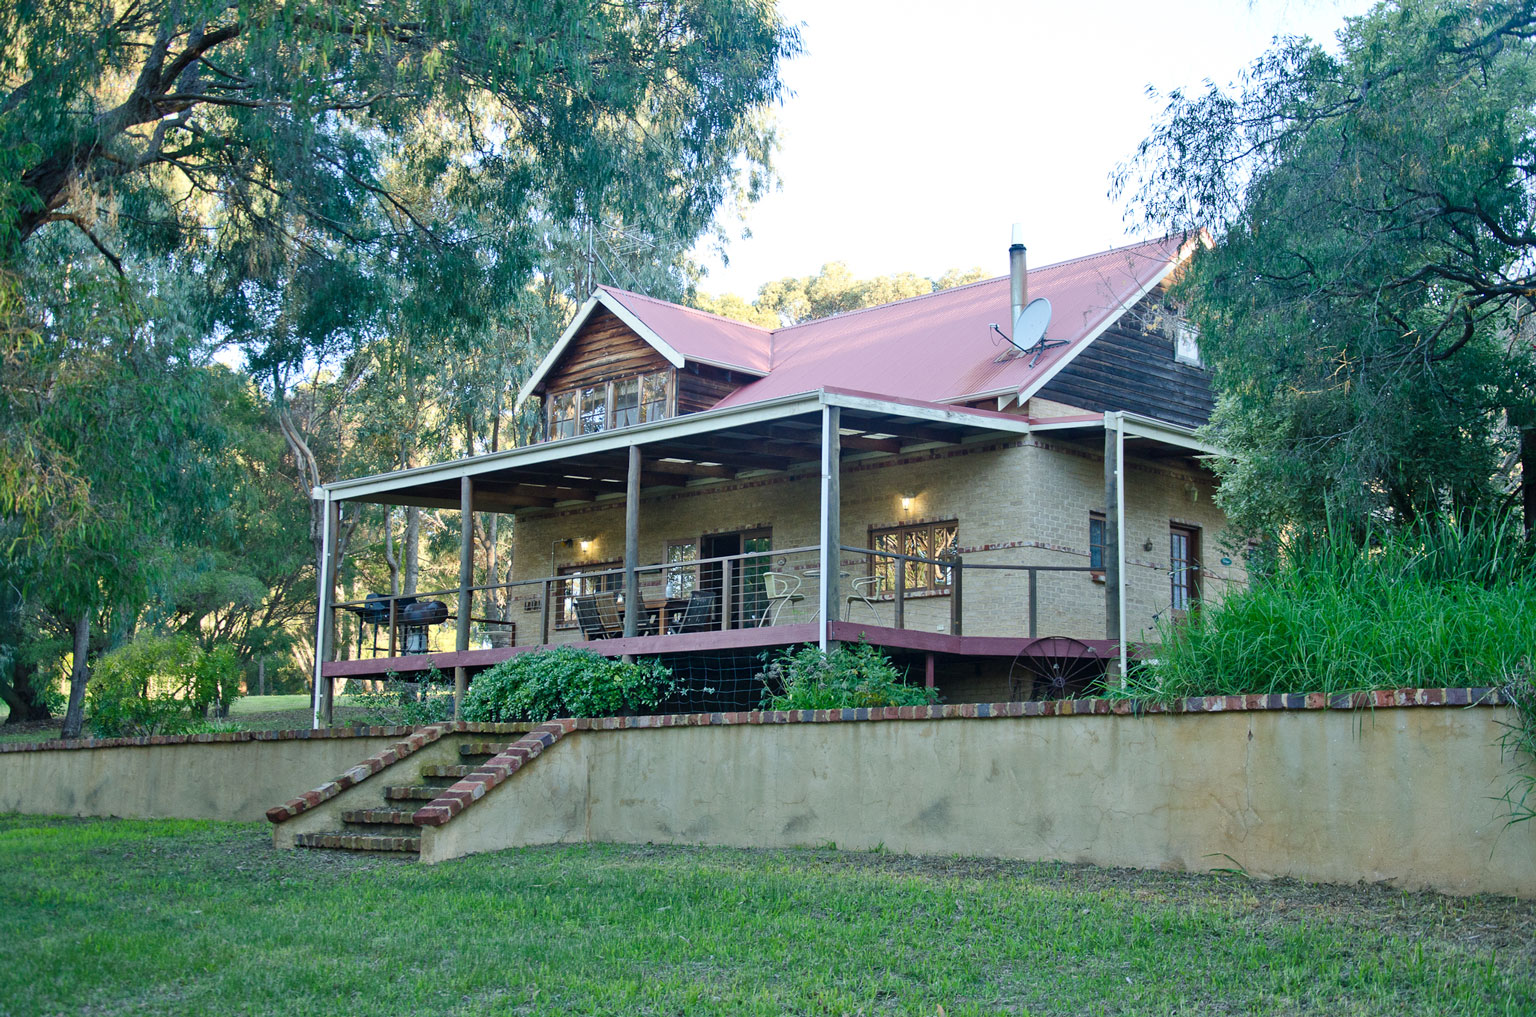 Bushy 39 s dream cottage our rates and tarrif specials for Family cottages